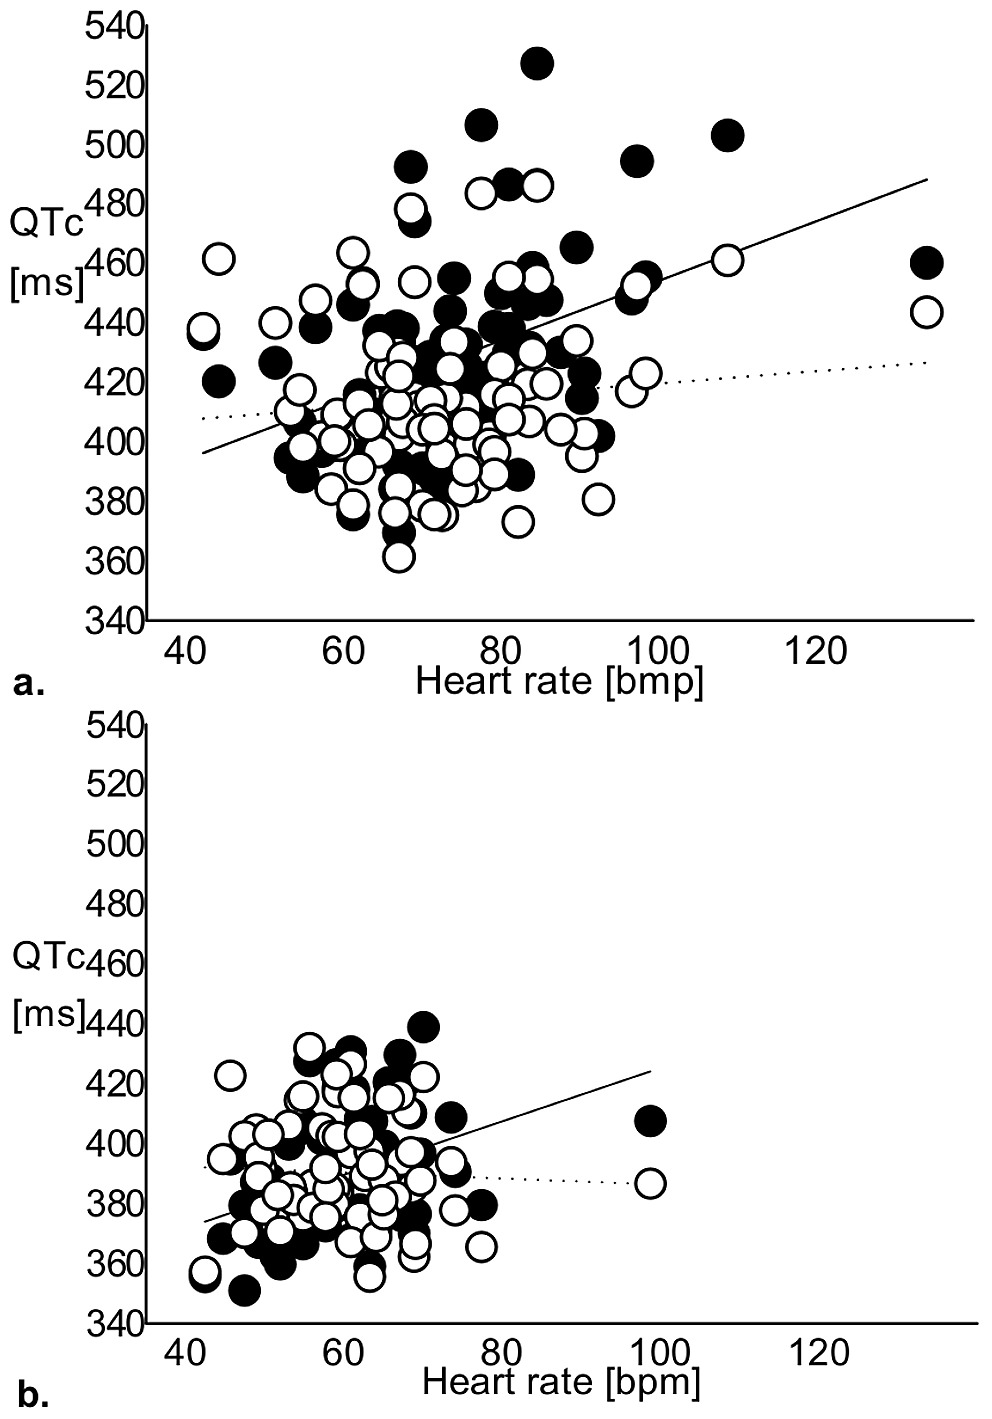 Heart rate plotted against QTc length